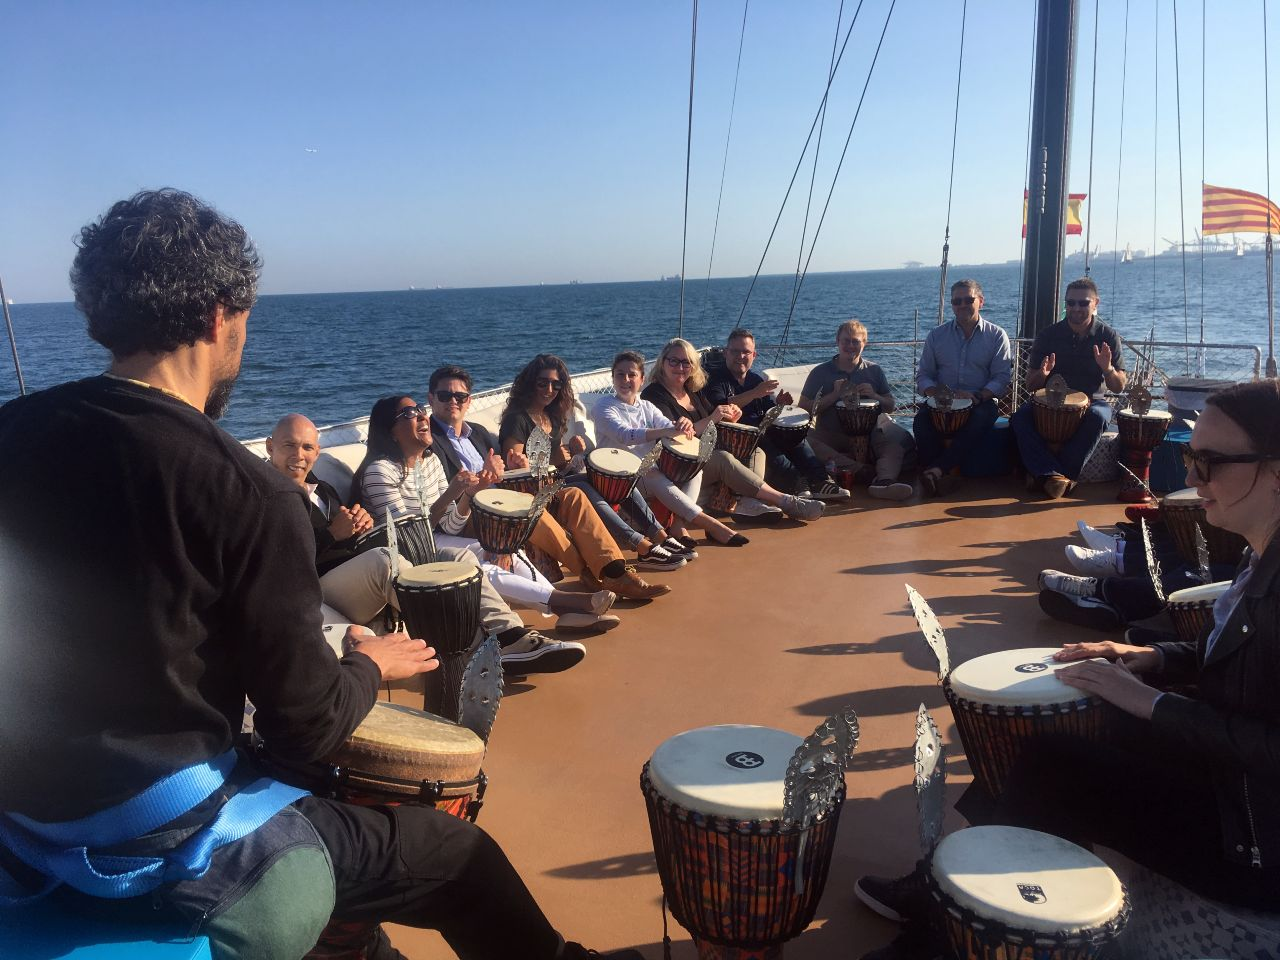 Music team building activity on boat